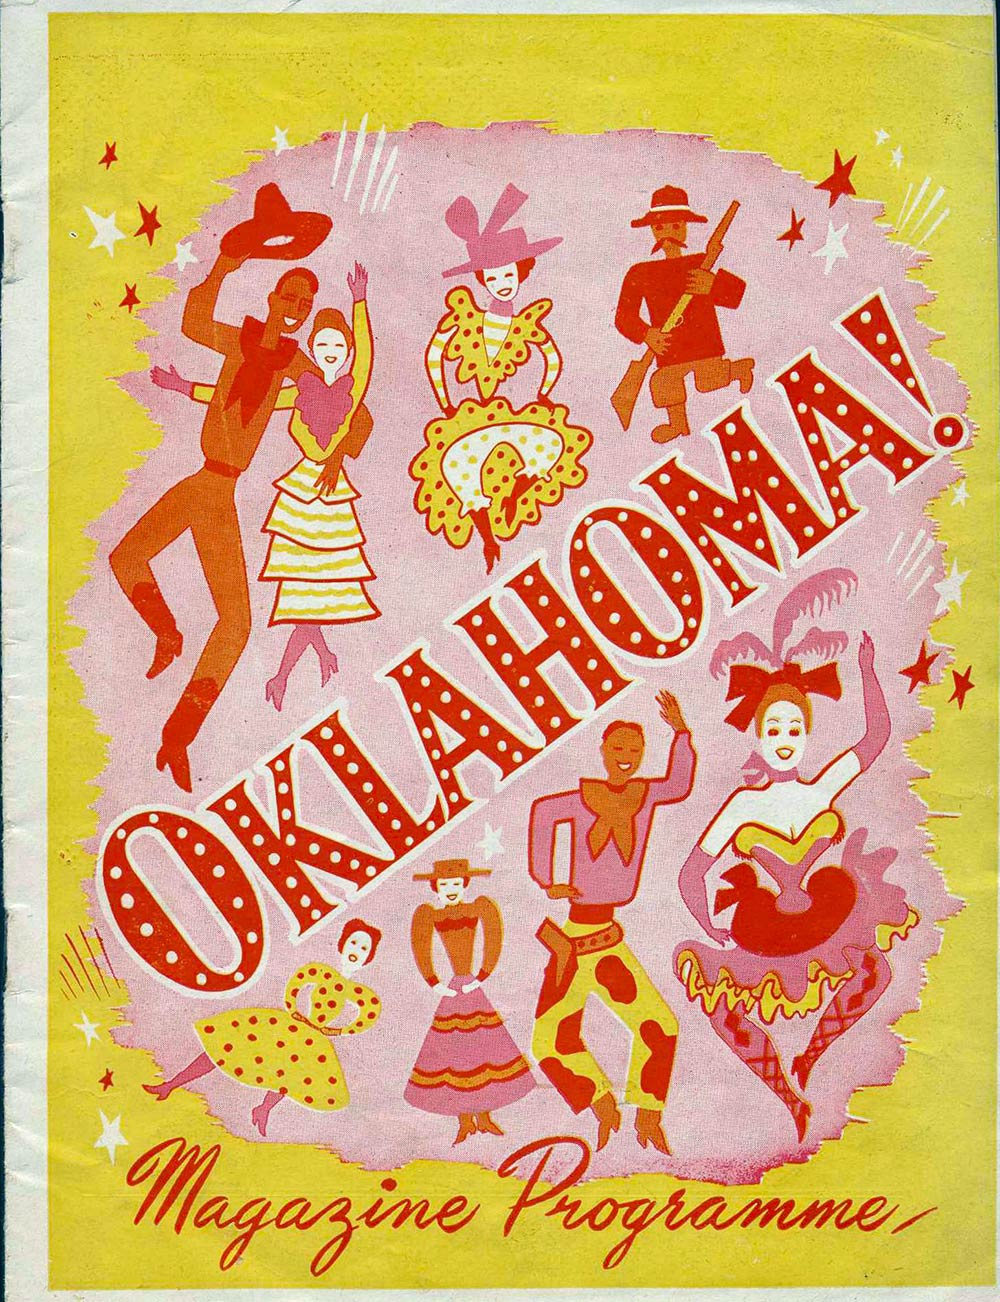 <em>Oklahoma</em>. Book and lyrics by Oscar Hammerstein II; music by Richard Rodgers. (J.C. Williamson Theatres Ltd.). His Majesty's Theatre, Dunedin, Sept. 5, 1950.